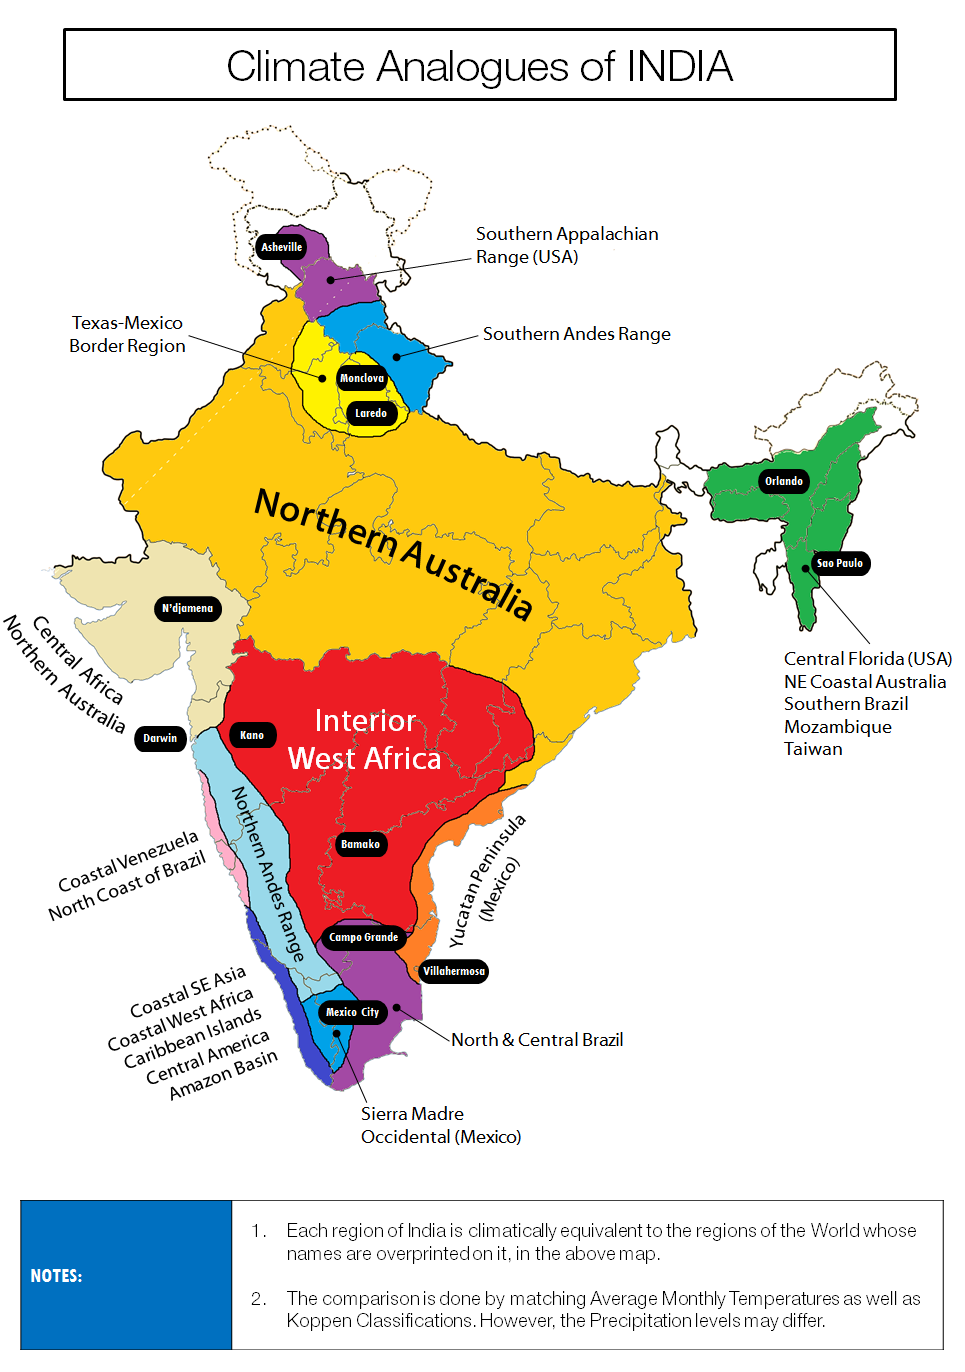 16 Fascinating Maps Thatll Change Your Perception Of India-3592